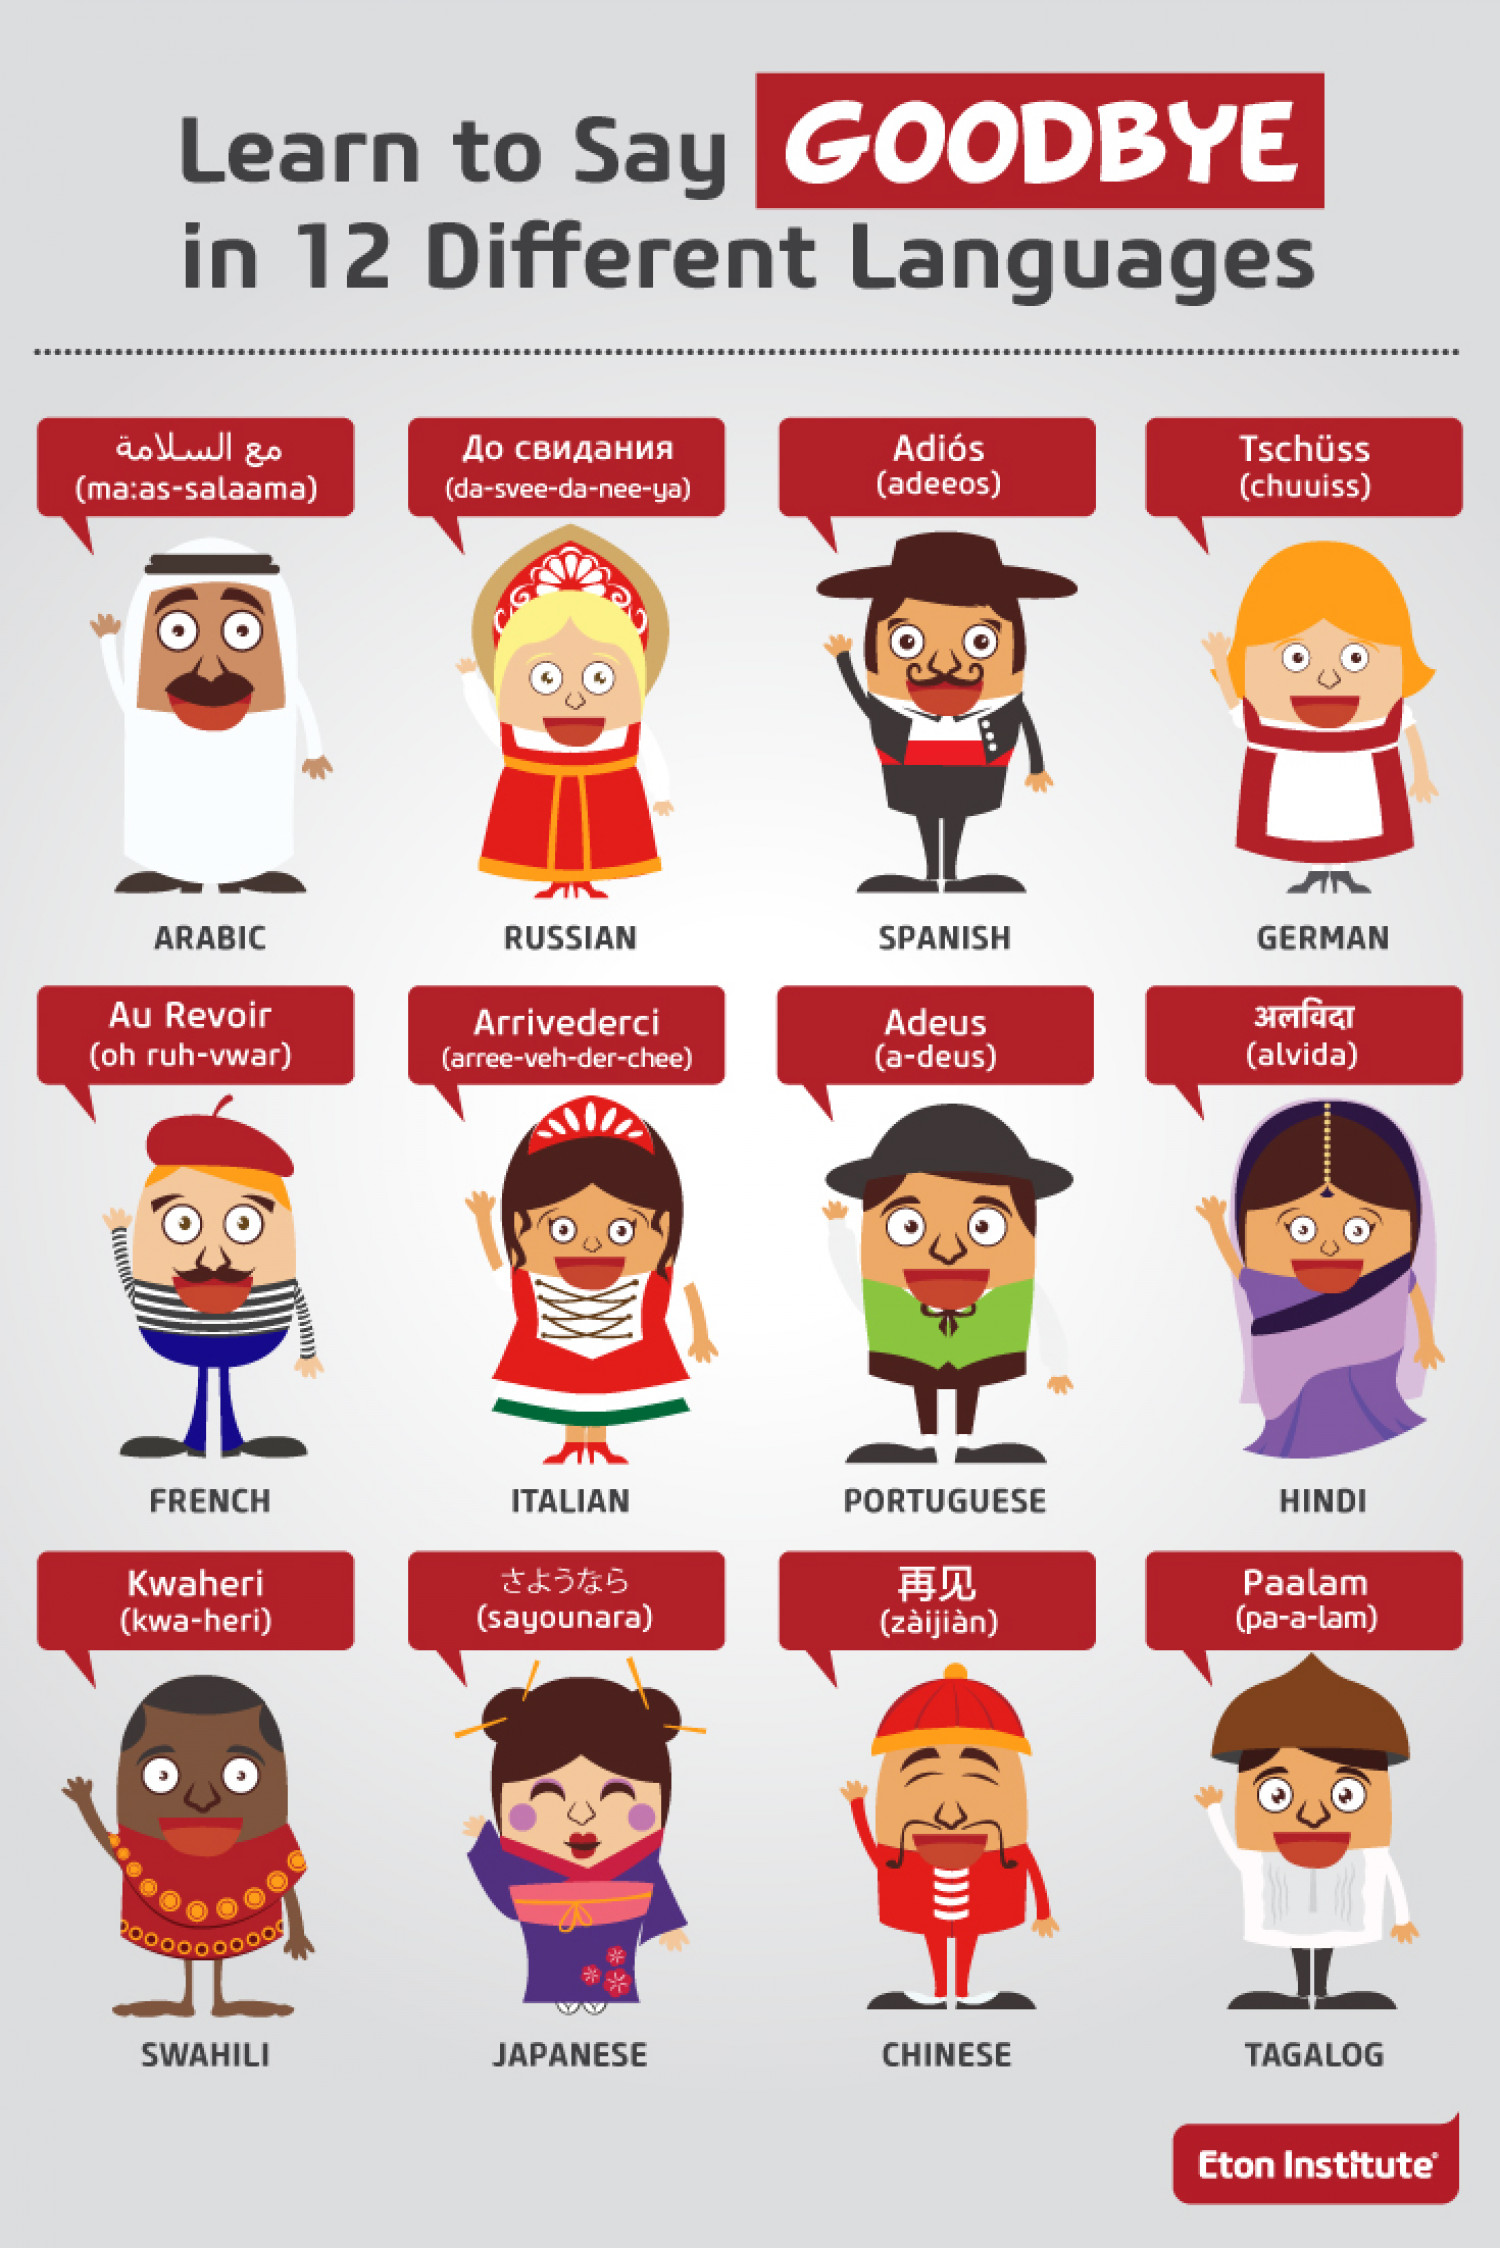 Learn to Say Goodbye in 12 Different Languages  Infographic